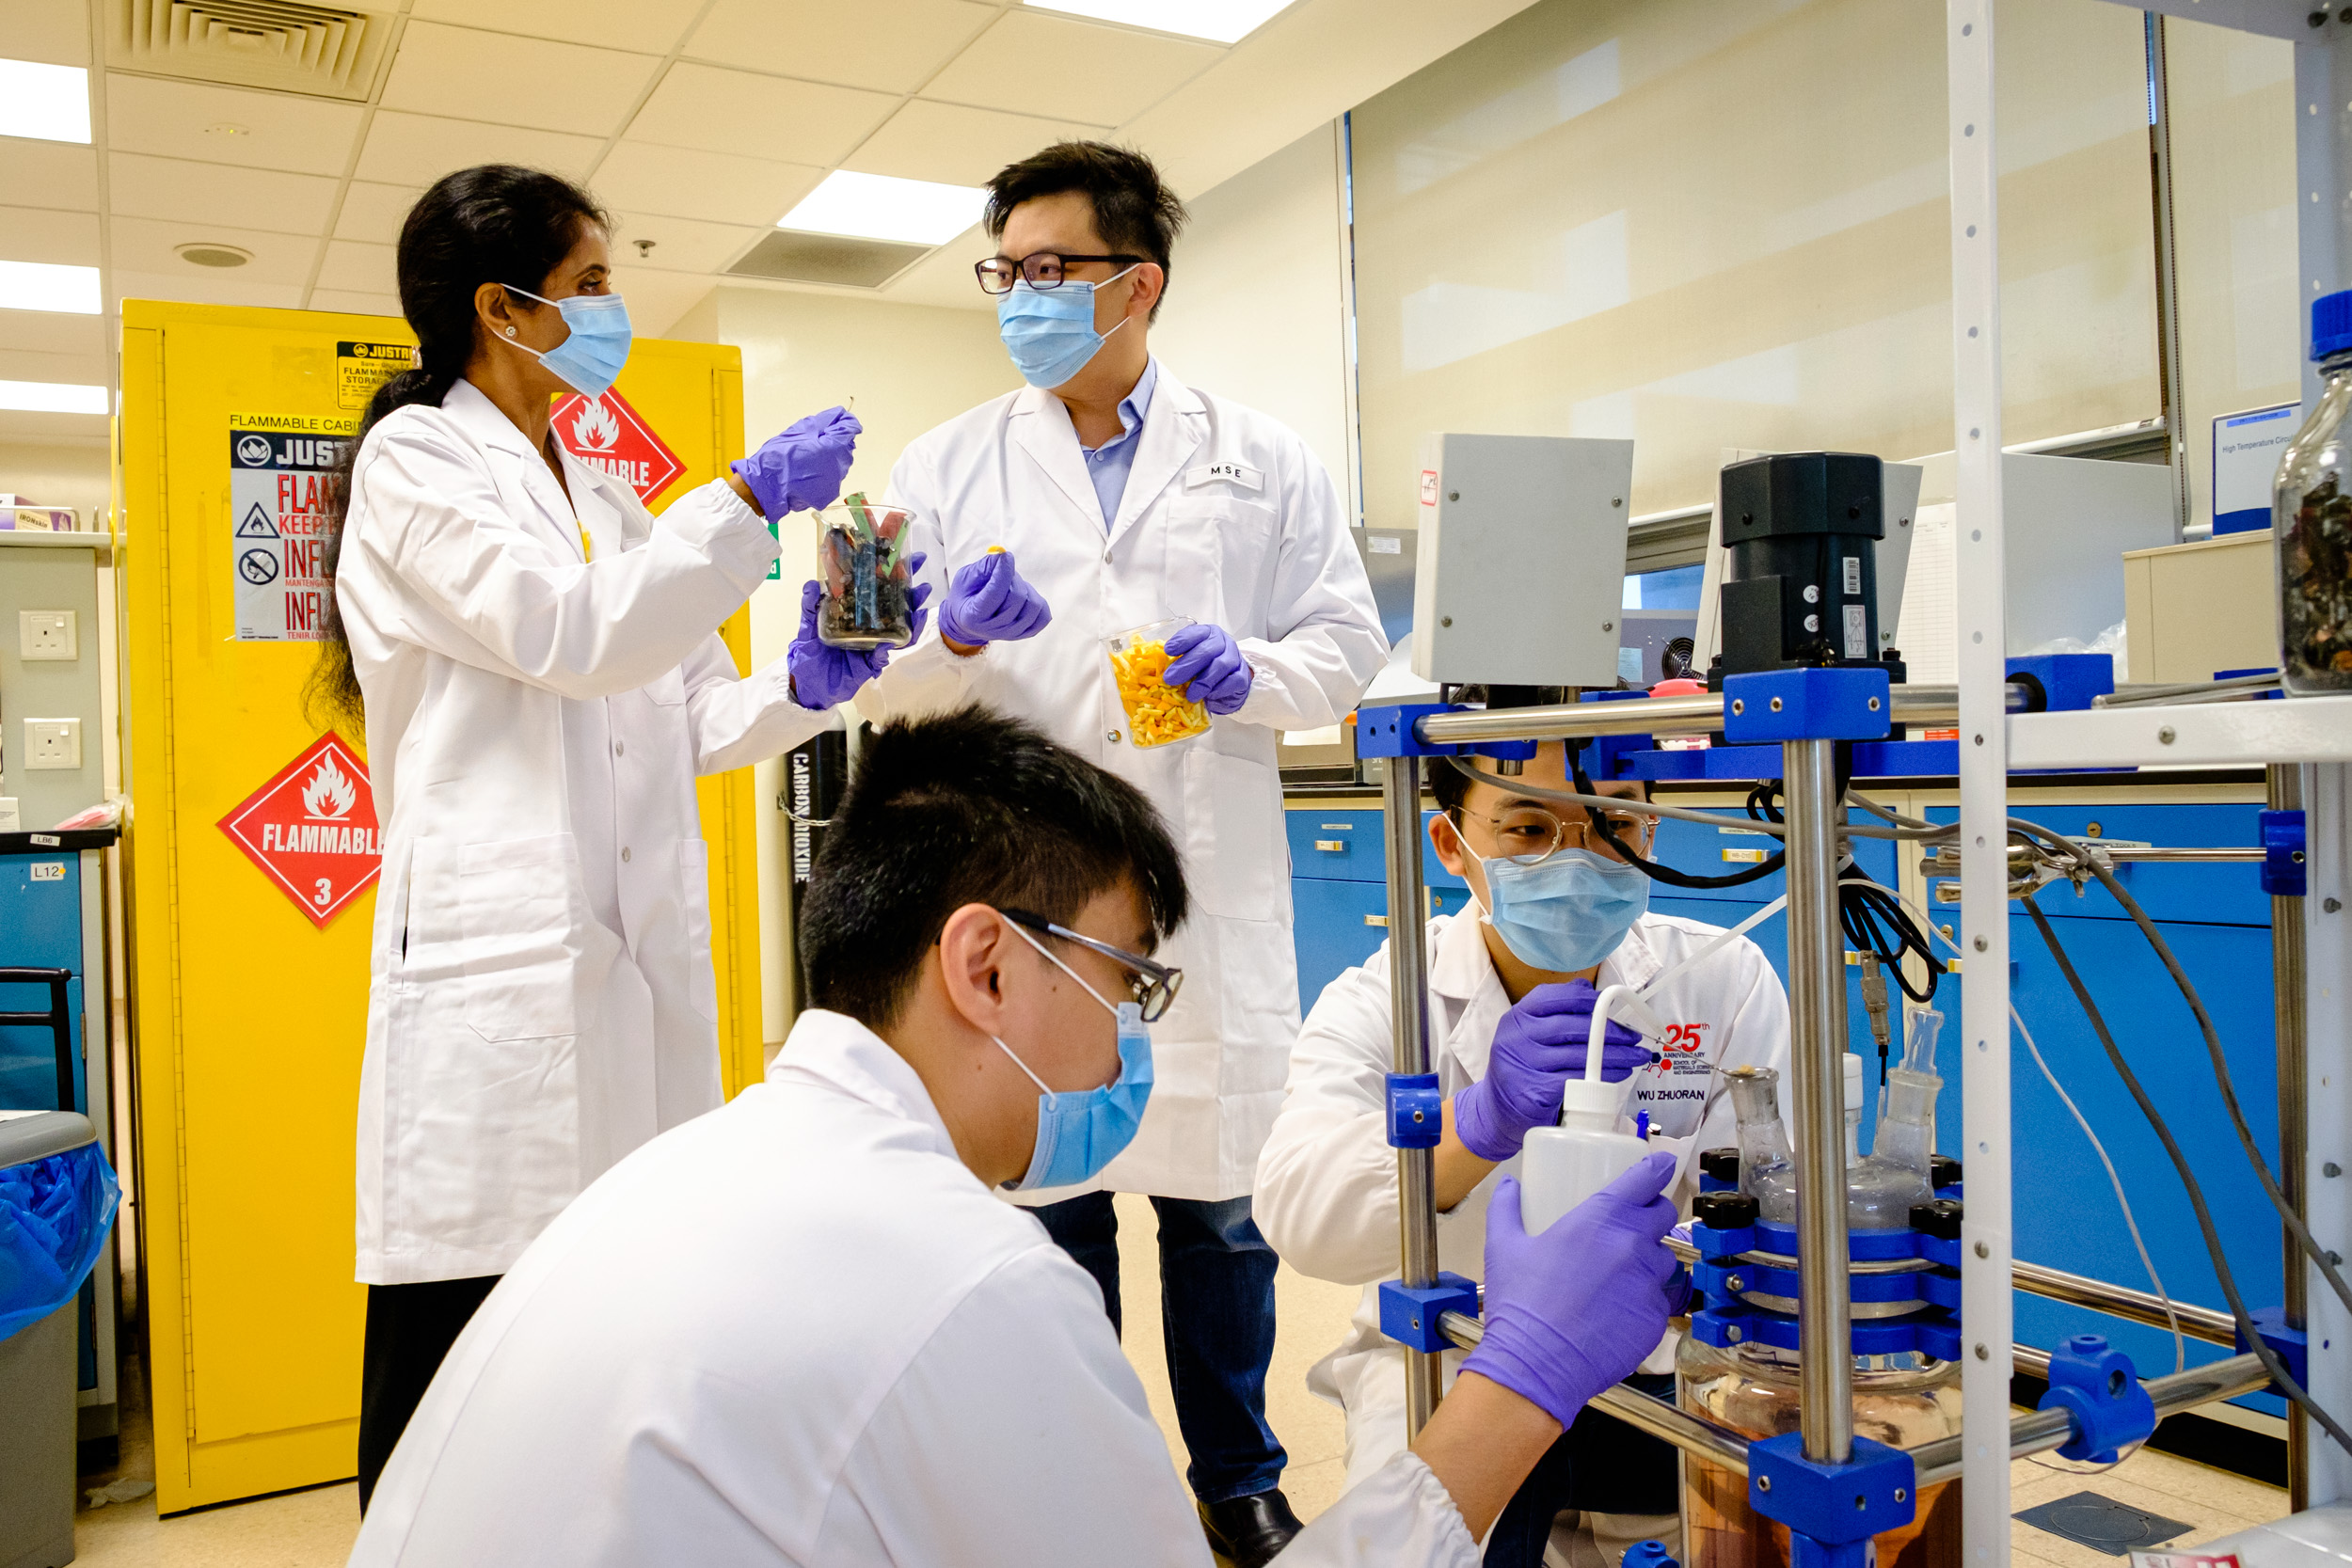 NTU materials scientists turn old batteries into new ones with orange peel. In the QS World University Rankings by Subject 2021, NTU is ranked 1st globally in Materials Science. (Credit: NTU Singapore)